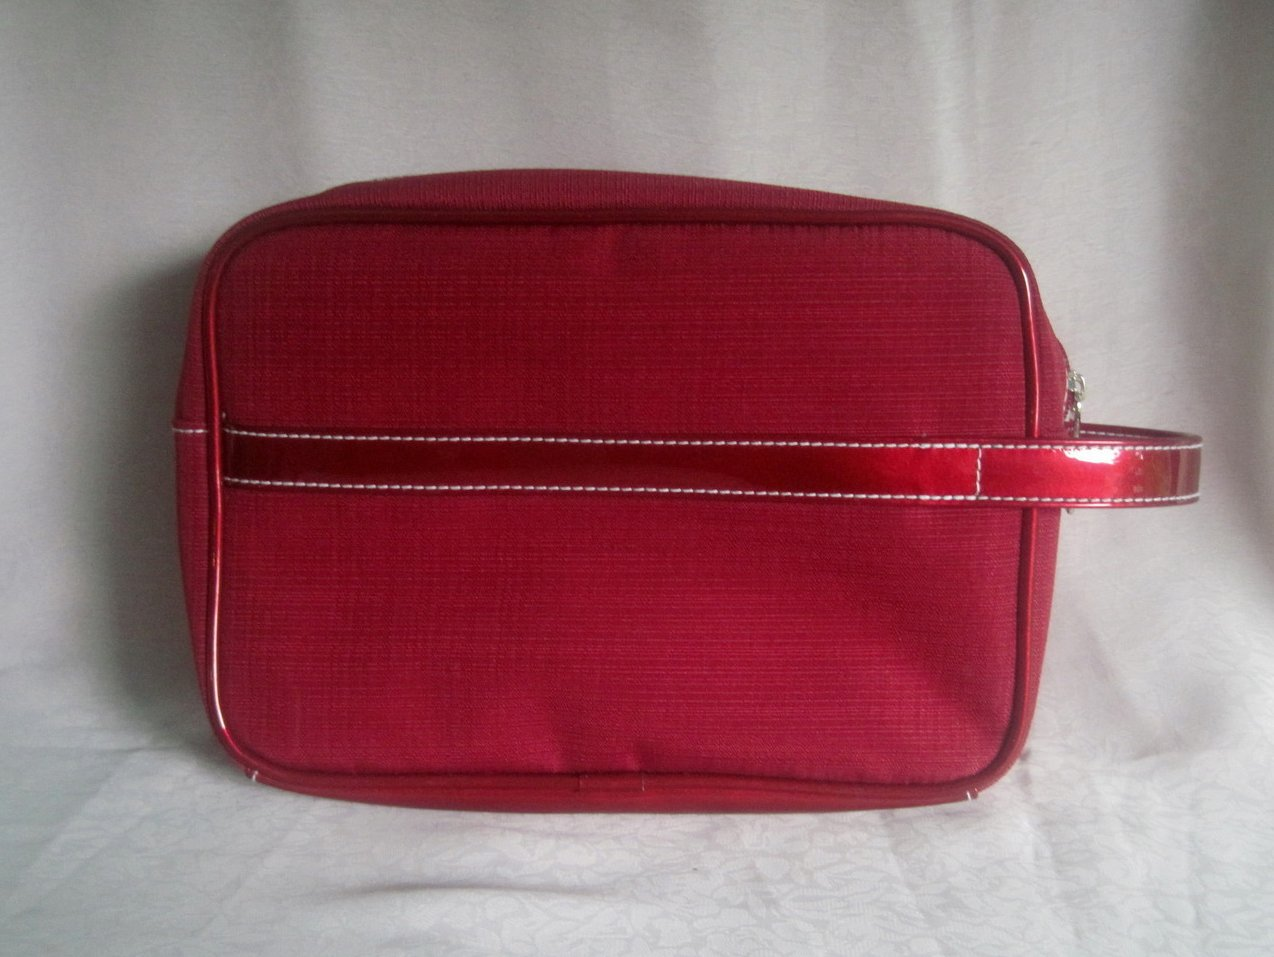 Image 1 of Estee Lauder Red Cosmetic Makeup Bag